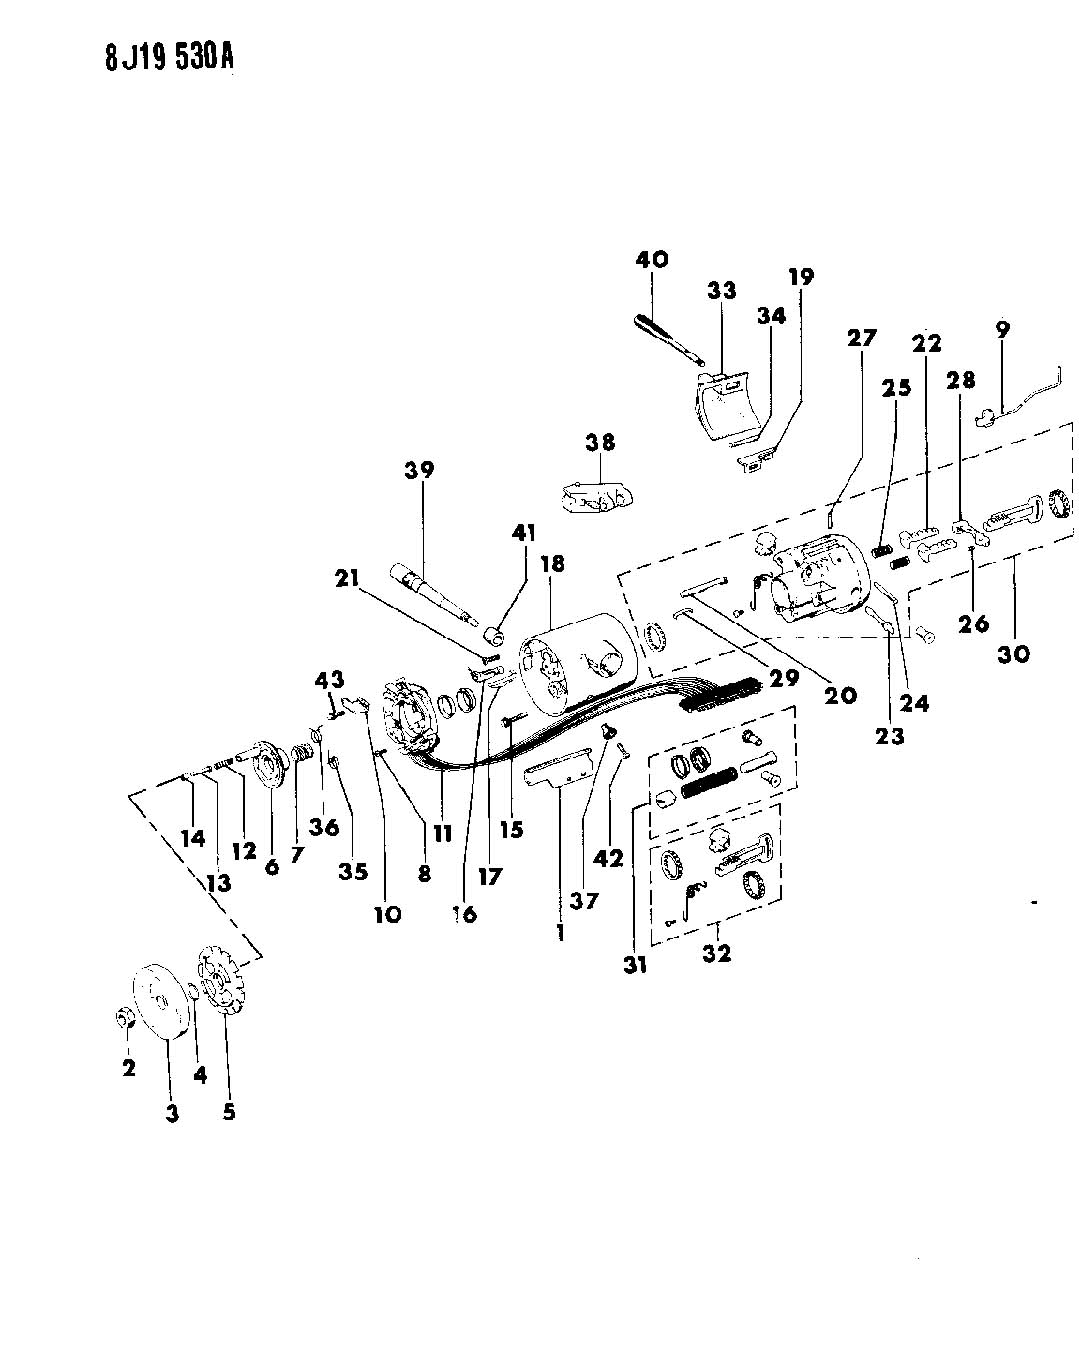 1989 Jeep Cherokee Steering Column Wiring Diagram 1990 Harness Schematics 93 Parts Imageresizertool Com Wrangler 1995